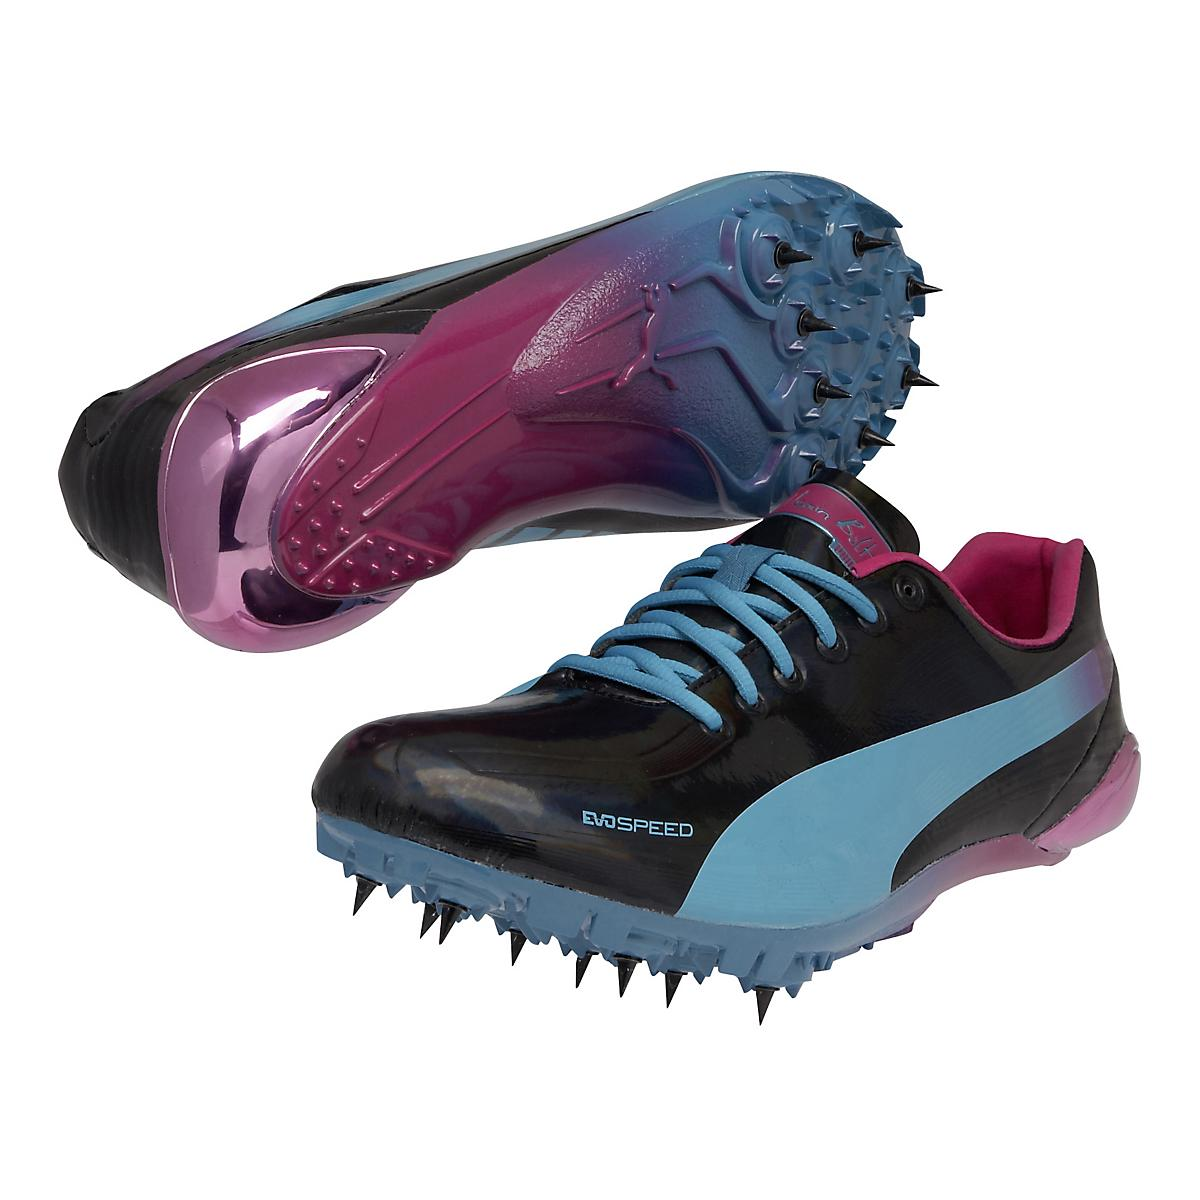 56ce2e508690 Mens Puma Bolt Evospeed Electric Spike Track and Field Shoe at Road Runner  Sports